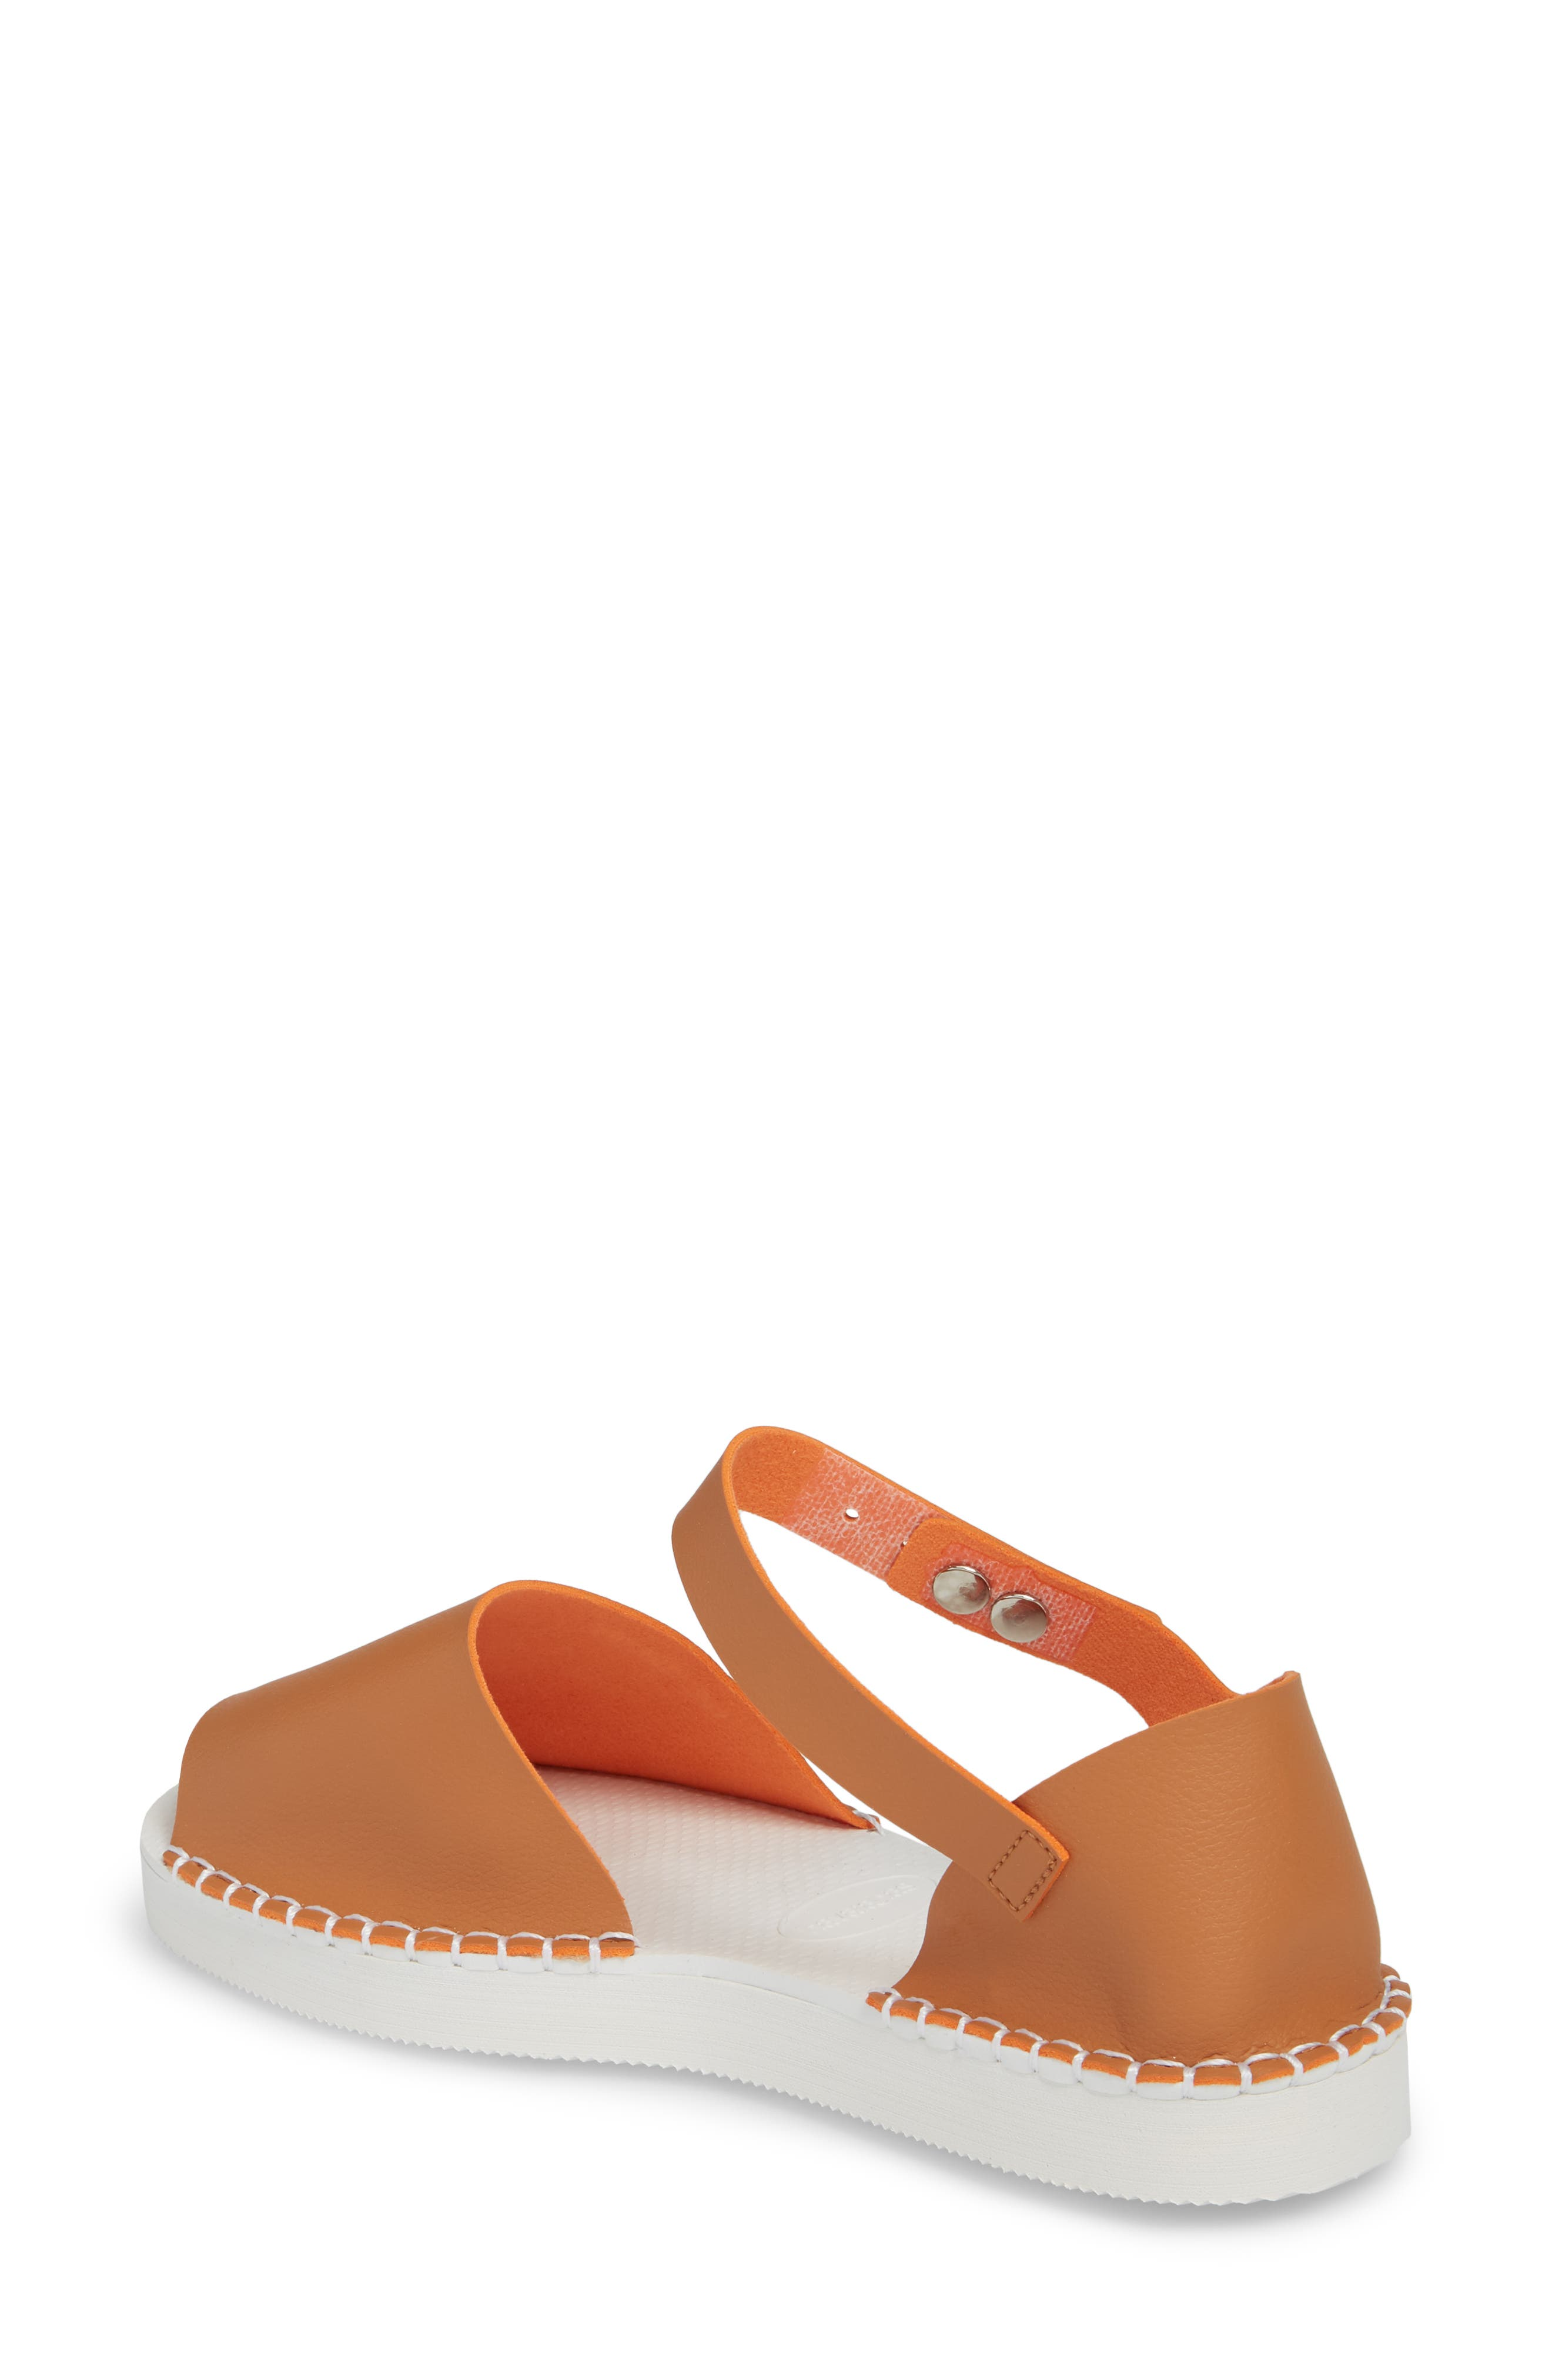 Flatform Fashion Sandal,                             Alternate thumbnail 2, color,                             CAMEL